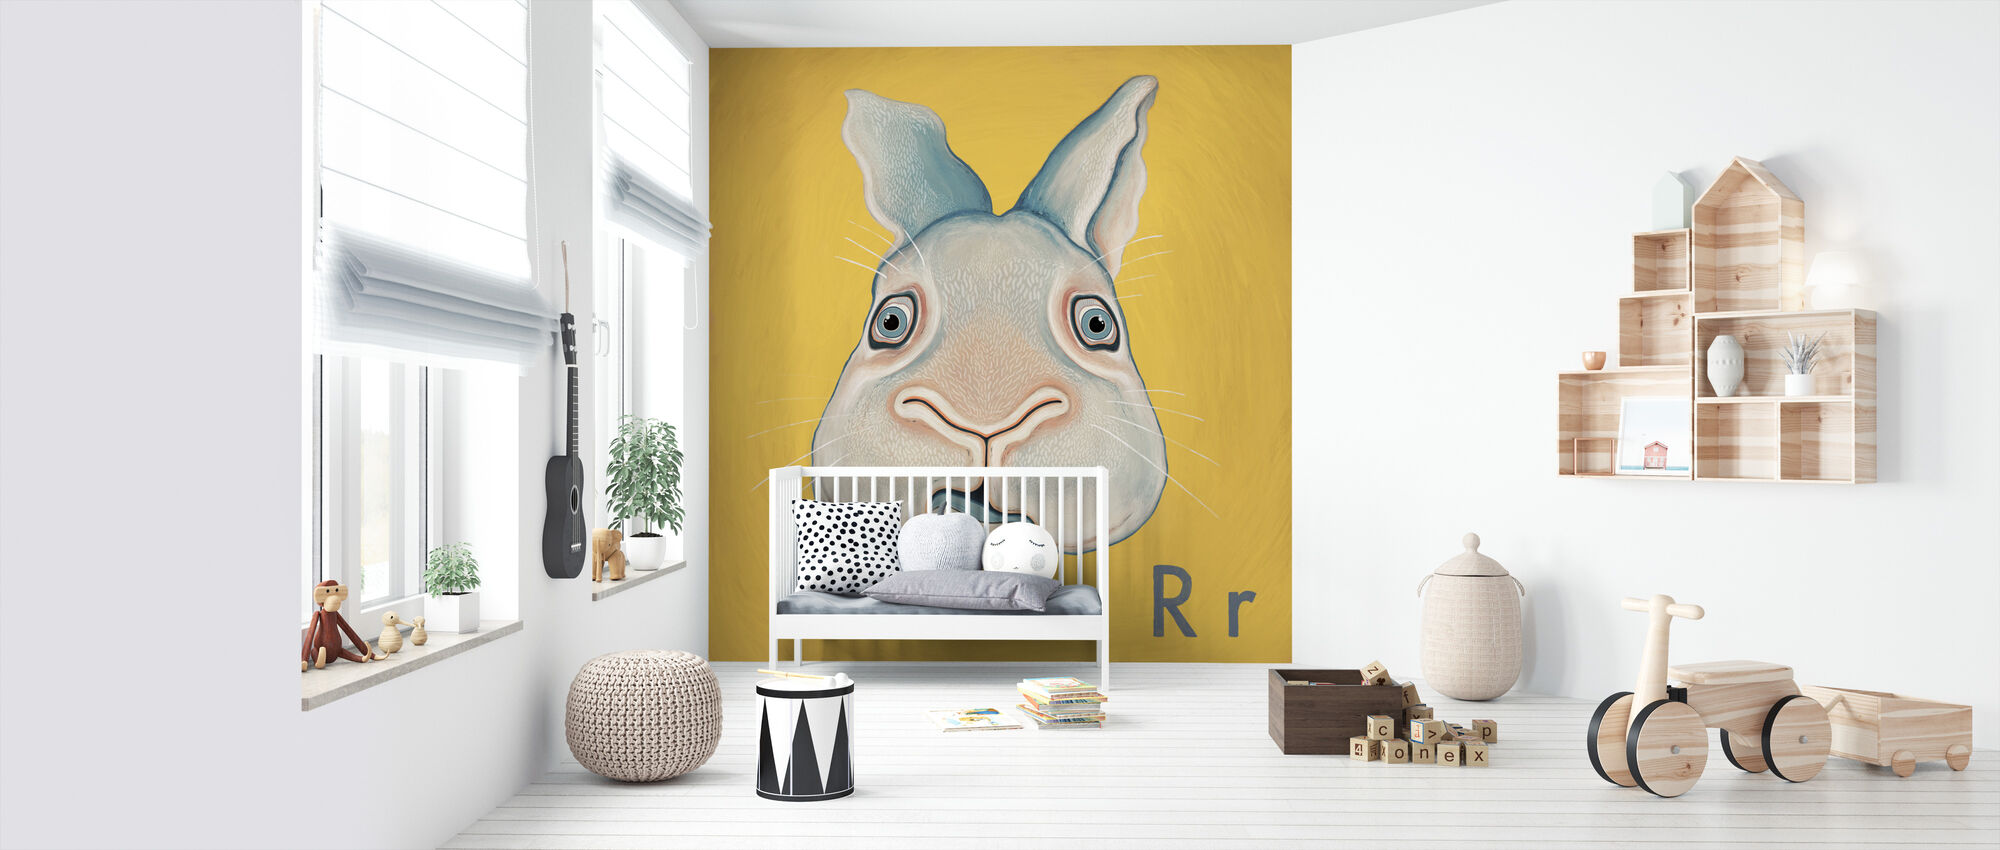 Rabbit with R - Wallpaper - Nursery